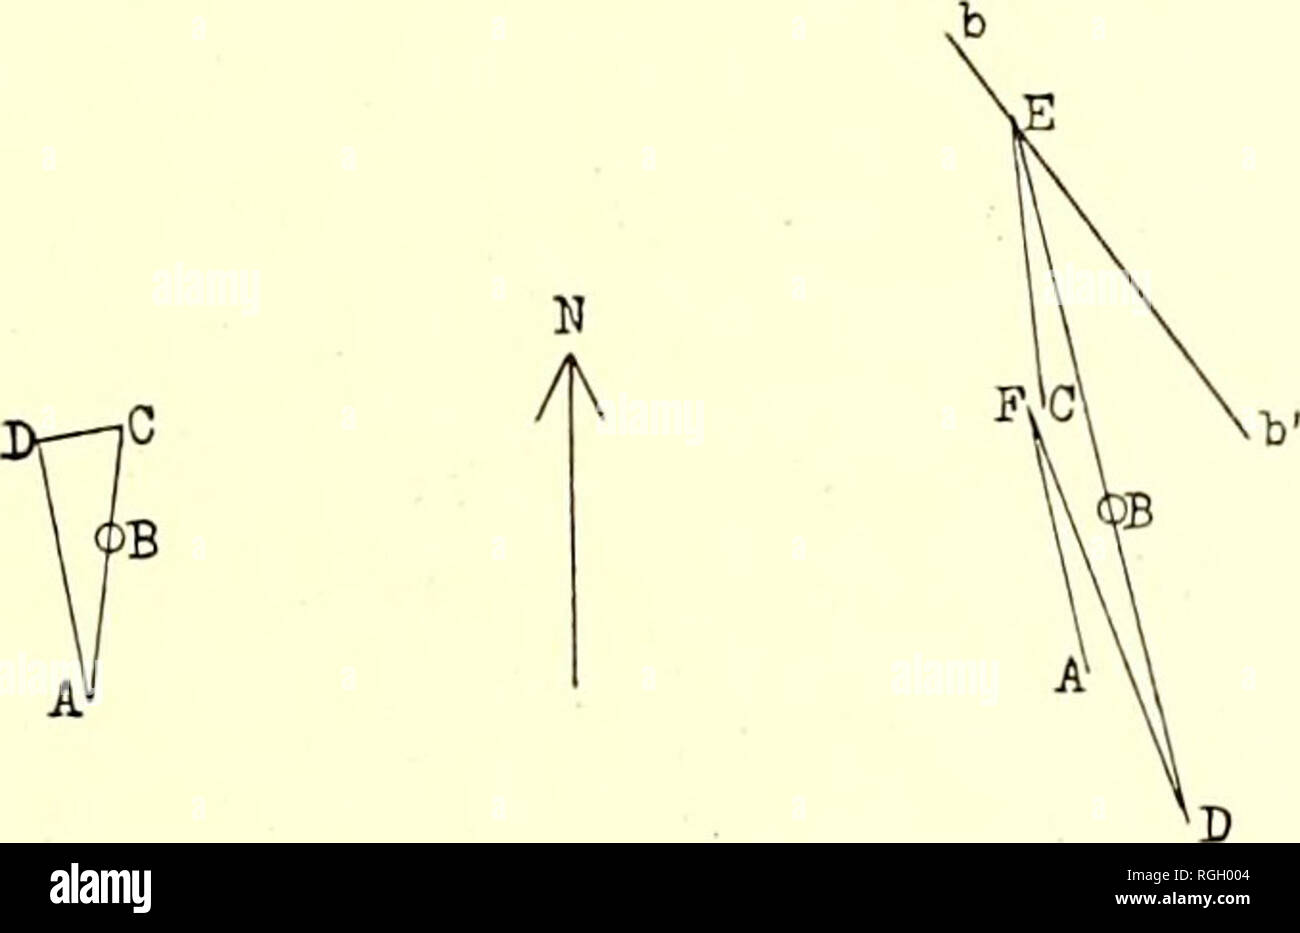 hight resolution of 1921 lawson the mobility of the coast ranges of